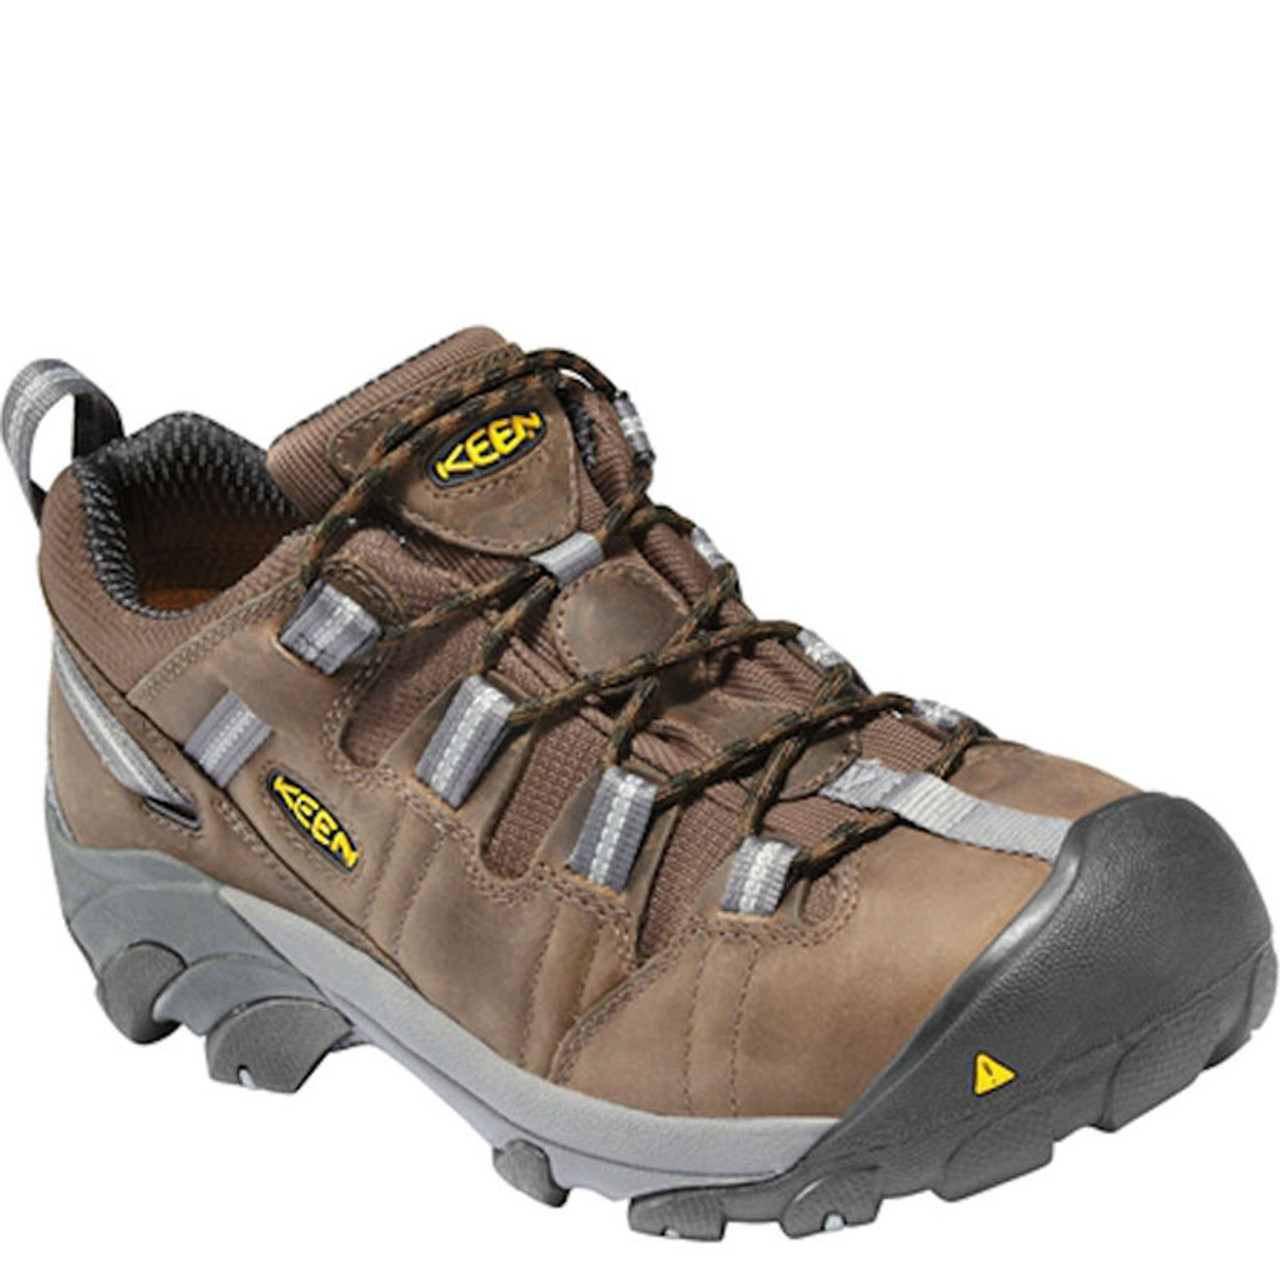 67c589dfc96 Keen Utility 1007012 DETROIT Steel Toe Non-Insulated Work Shoes